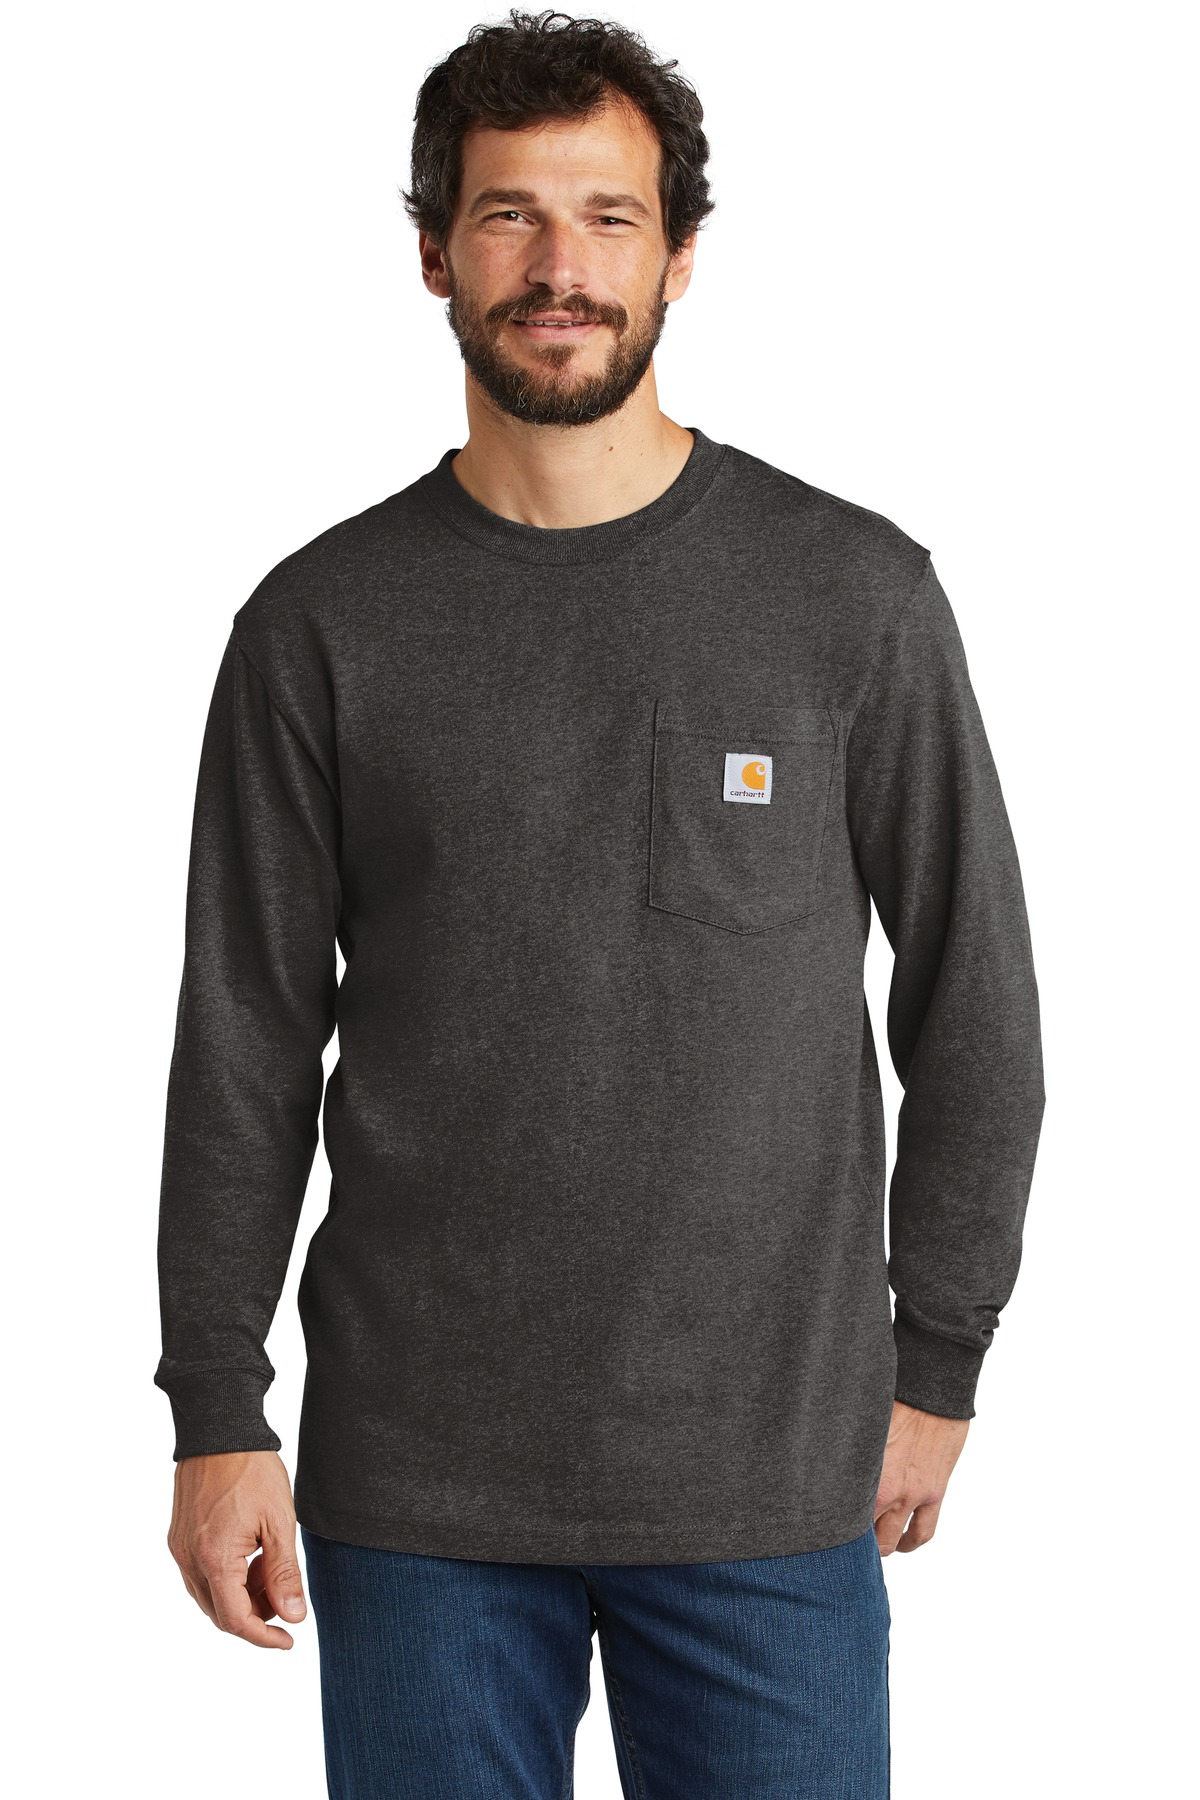 Carhartt  ®  Workwear Pocket Long Sleeve T-Shirt. CTK126 - Carbon Heather